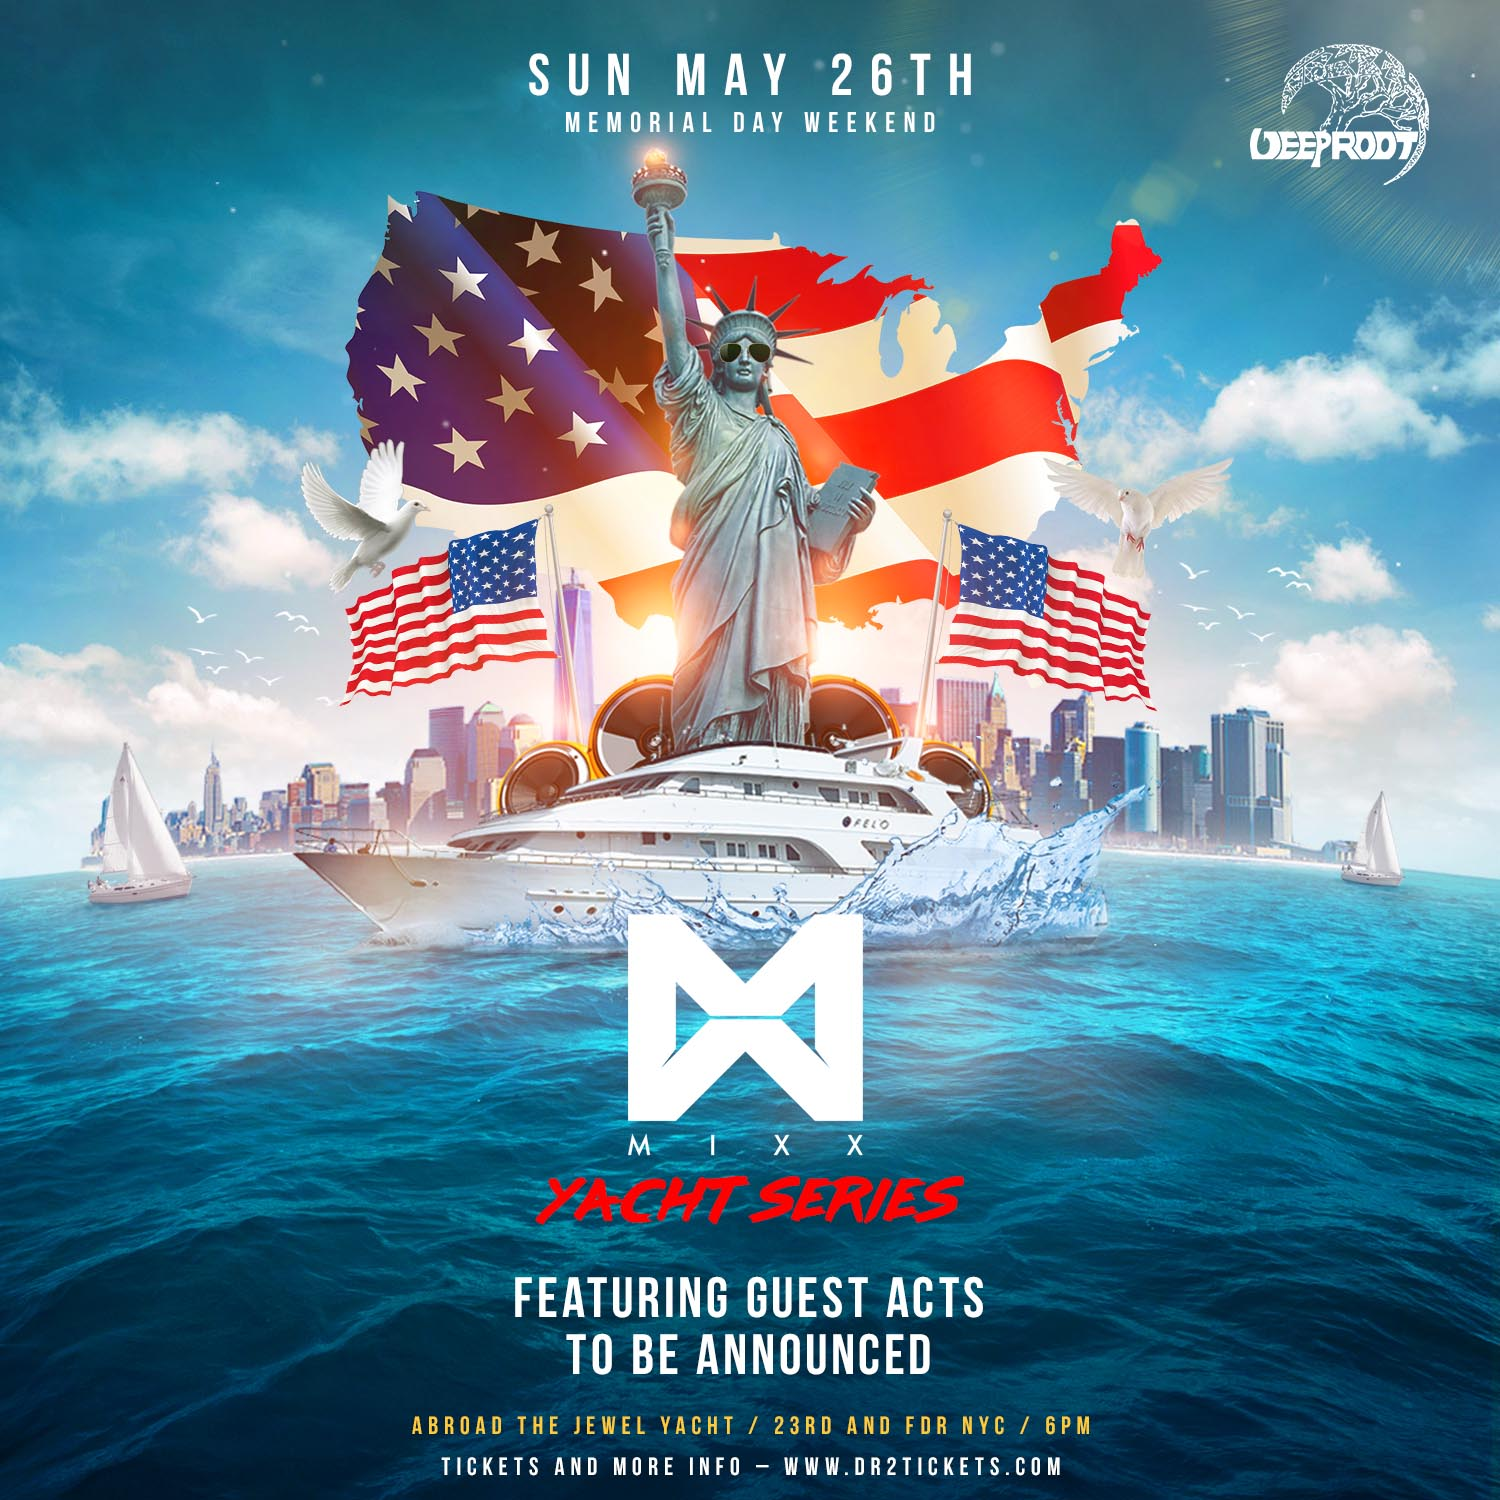 Memorial Day Weekend On The Jewel Yacht